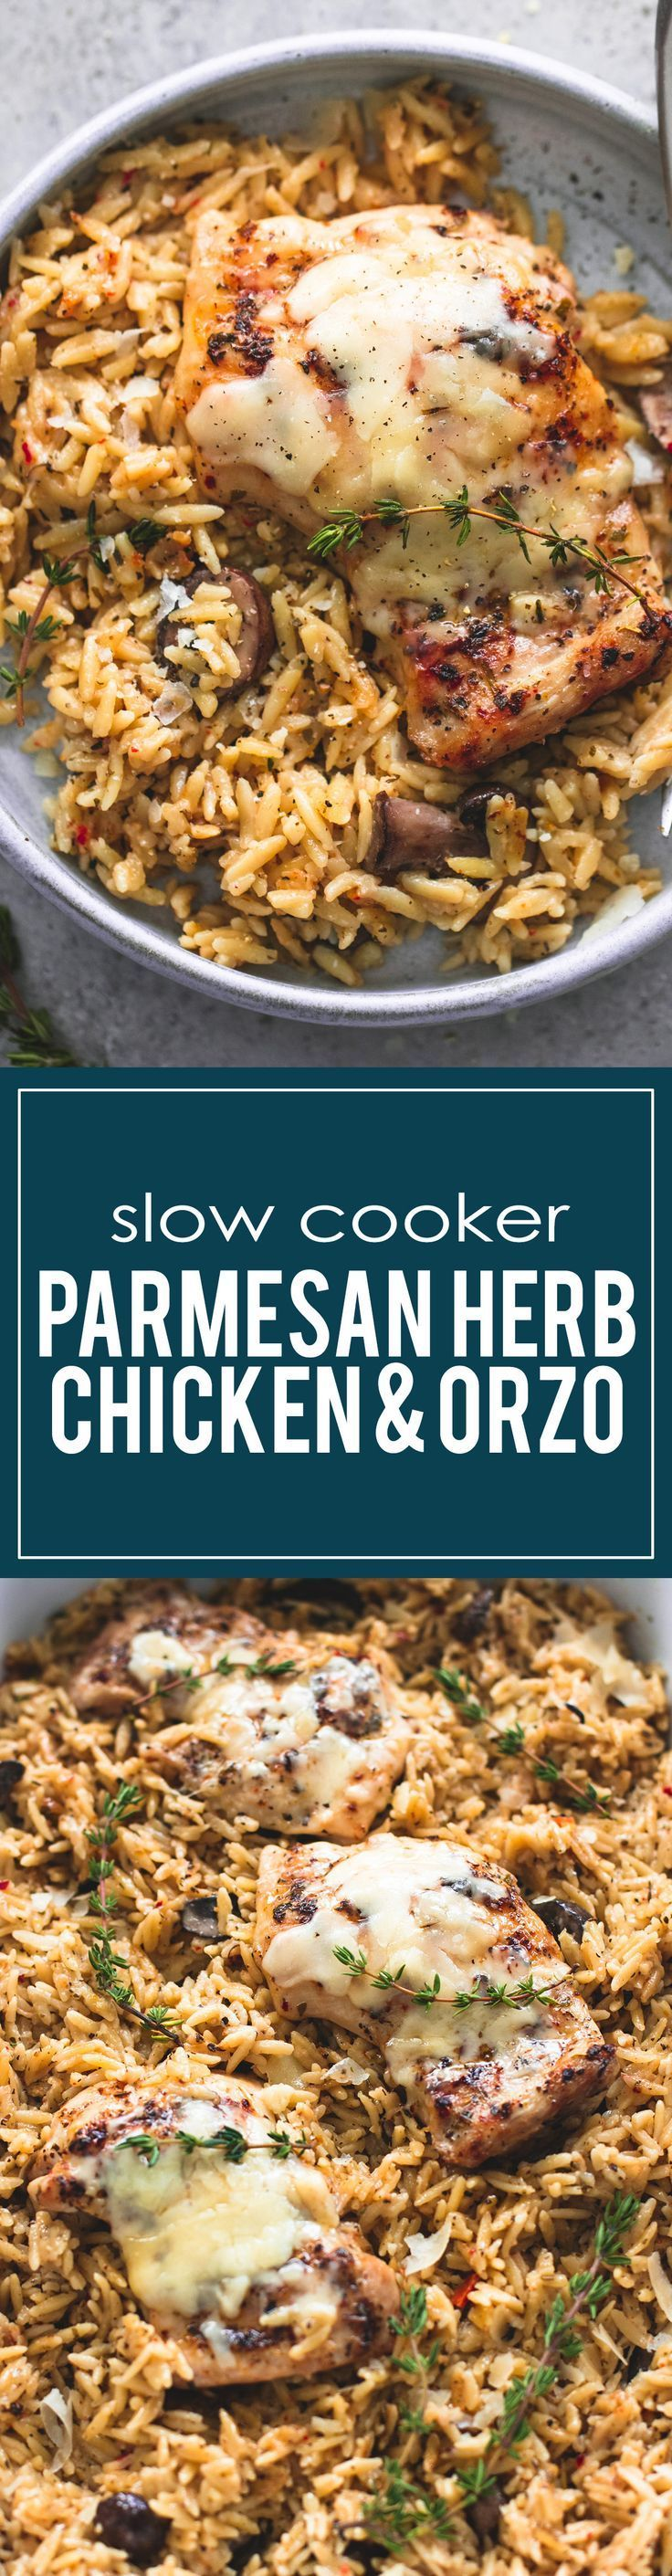 Easy Slow Cooker Parmesan Herb Chicken & Orzo | http://lecremedelacrumb.com